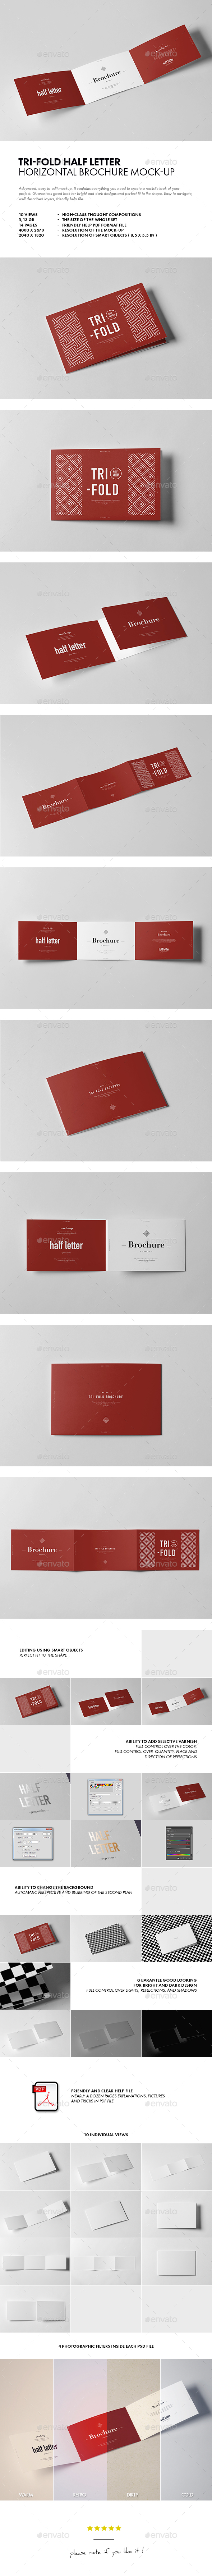 Tri-Fold Half Letter Horizontal Brochure Mock-up - Brochures Print